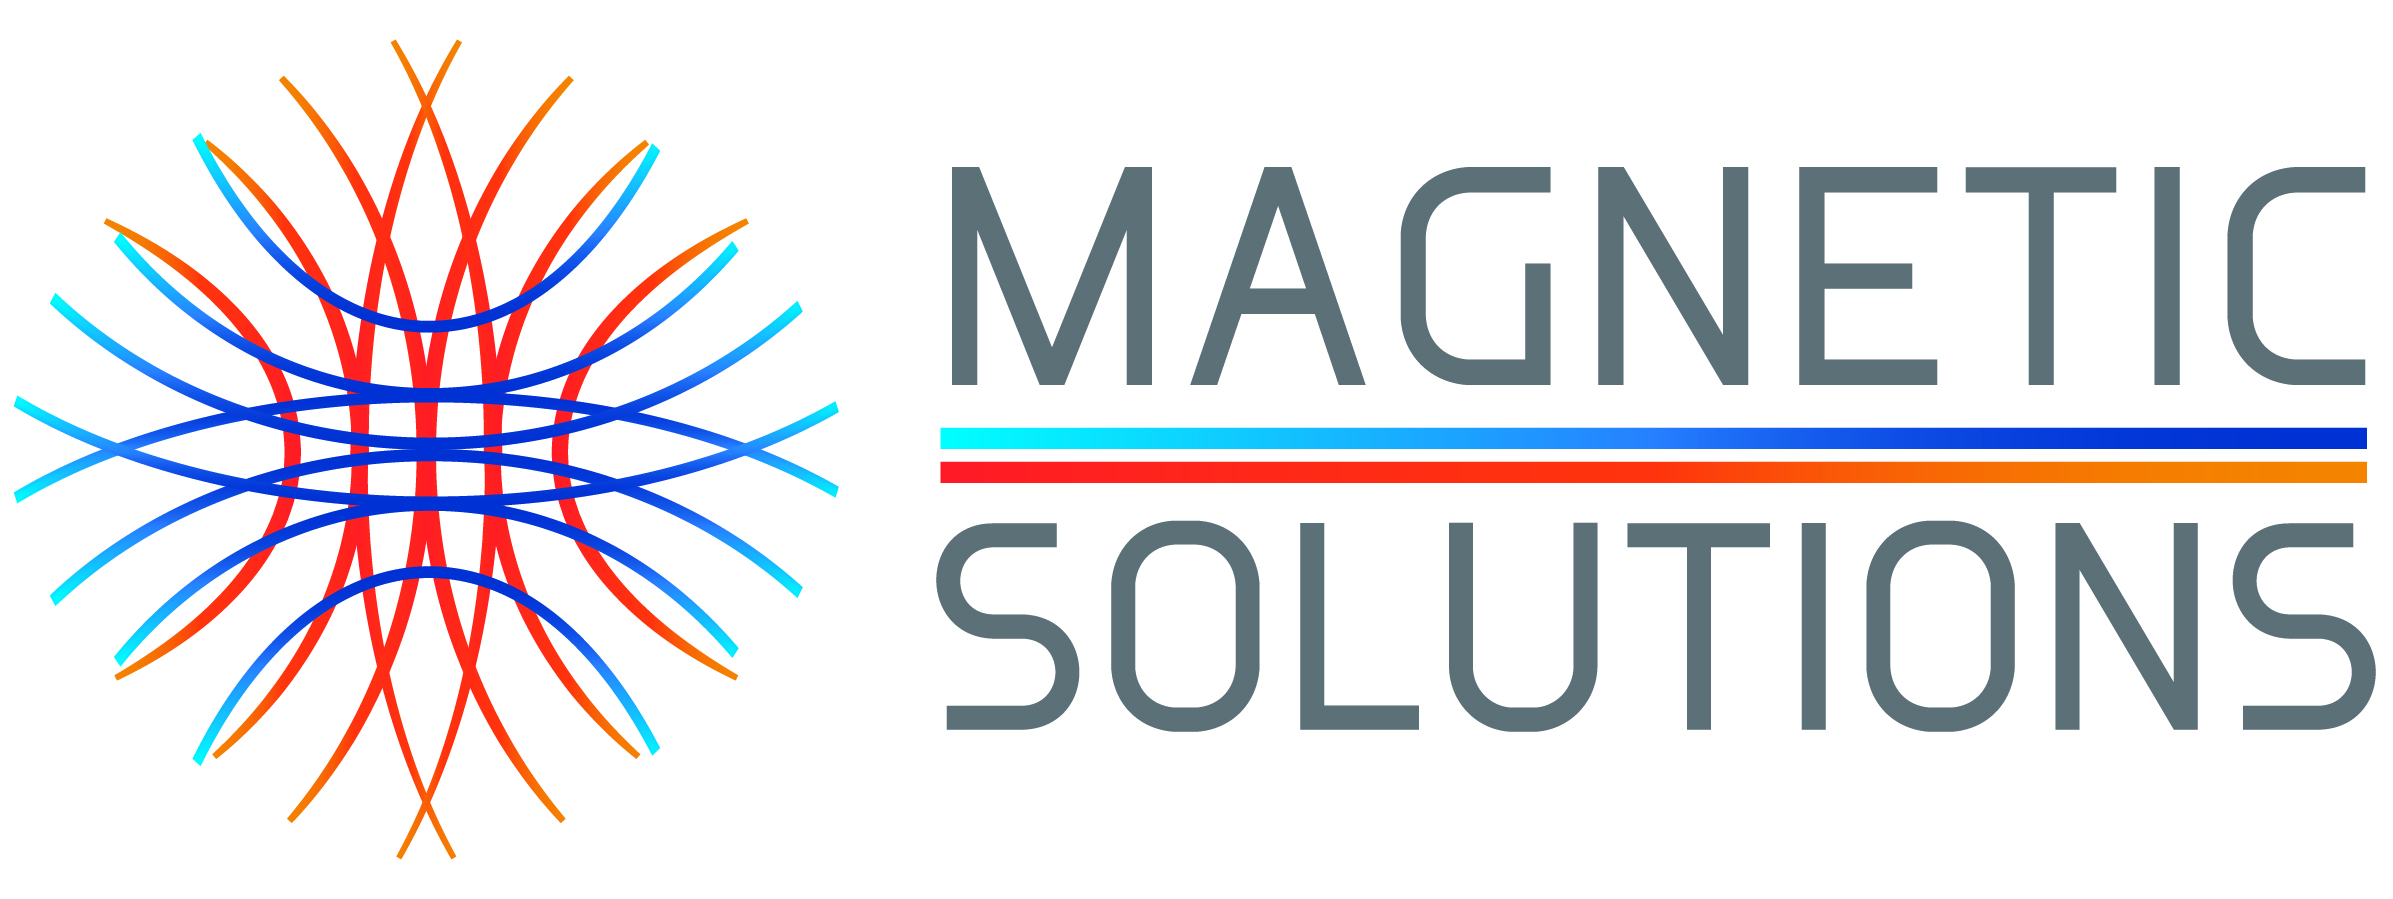 Magnetic Solutions | Industrial Magnets | Neodymium Magnets